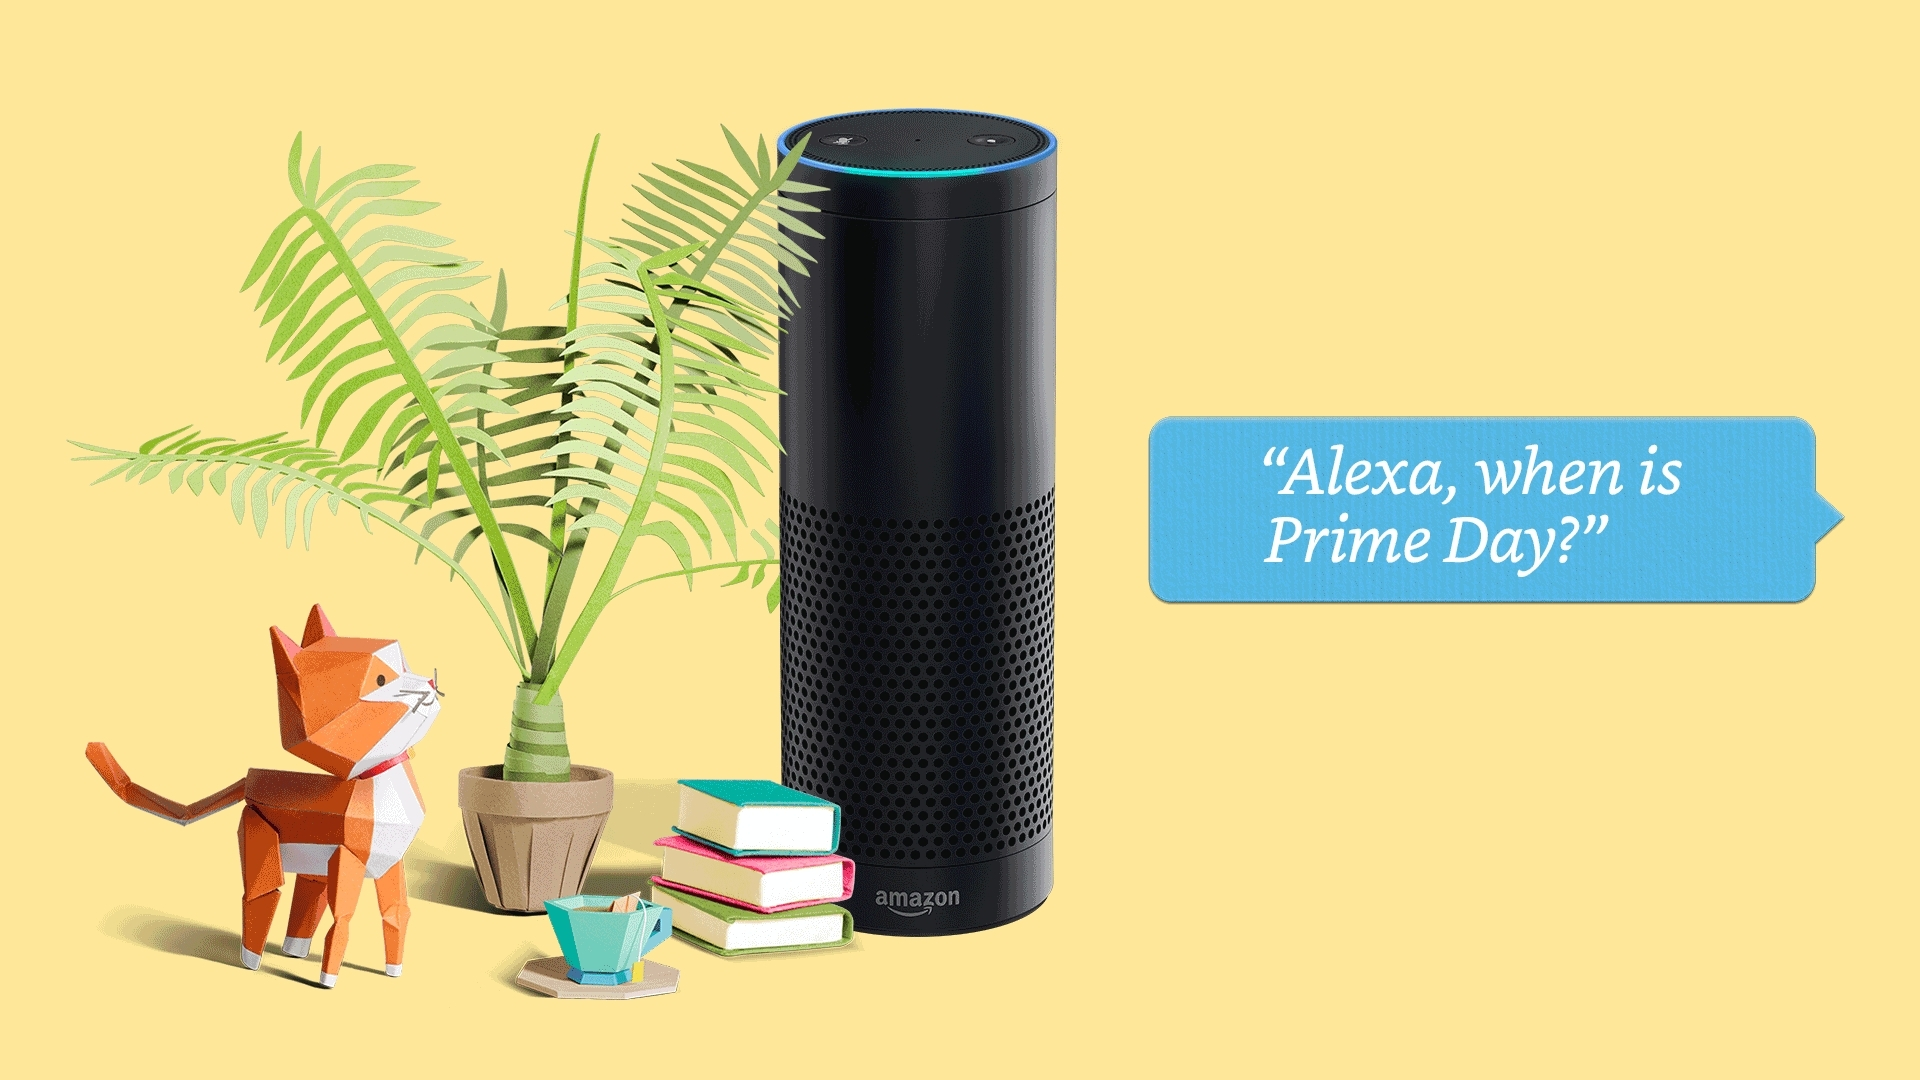 Alexa offers discounted Prime membership and early voice shopping Prime Day deals. (Photo: Business Wire)